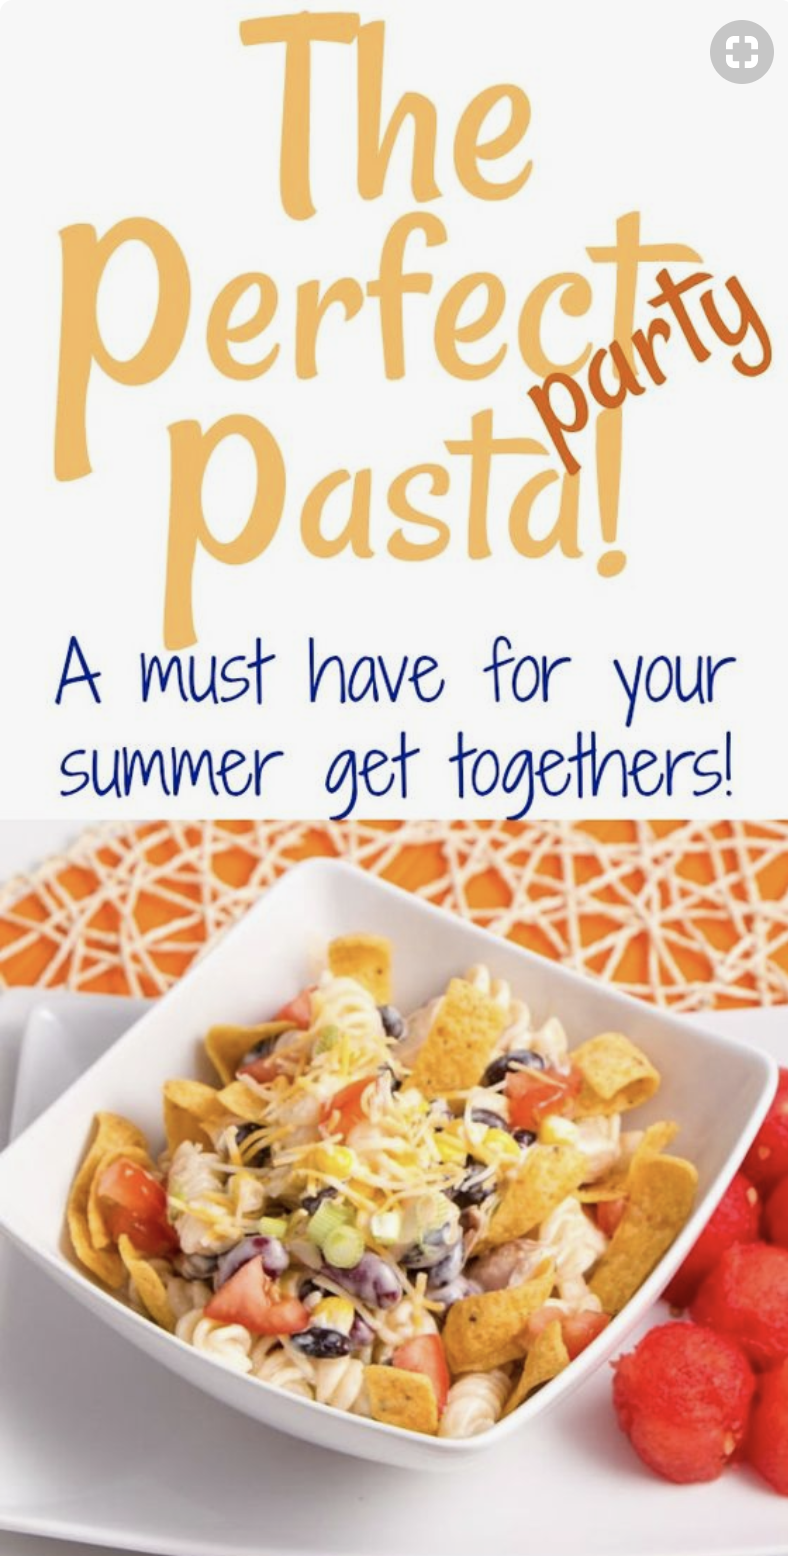 Wonderful Delicious Pasta Salad so quick and easy for potlucks. Chicken BBQ Ranch Pasta Salad is amazing. Perfect for dinner, Potlucks or bringing to the office. We love it!